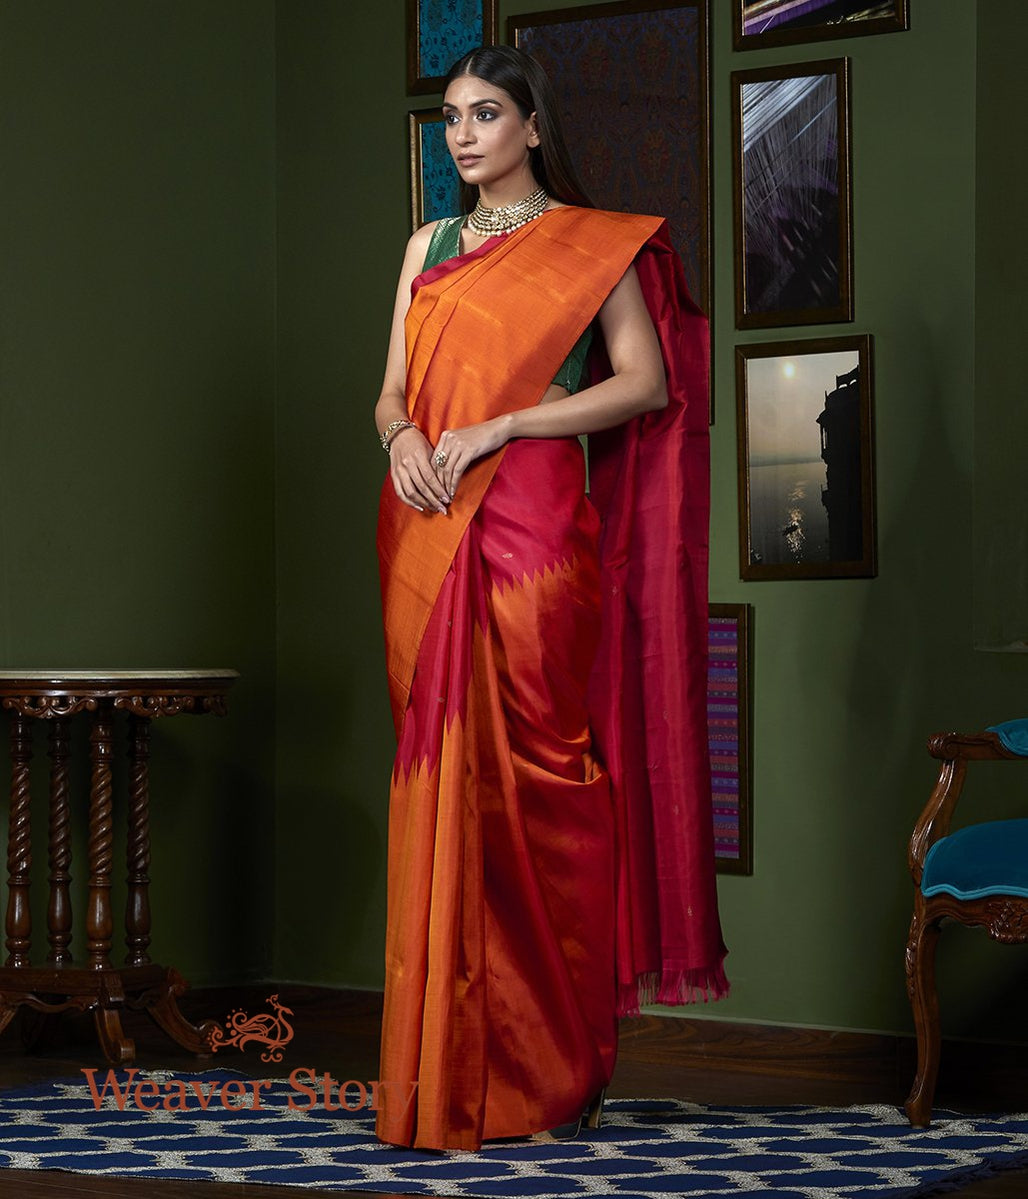 Handwoven Orange Twill Weave Kanjivaram Saree with Rising Temple Borders